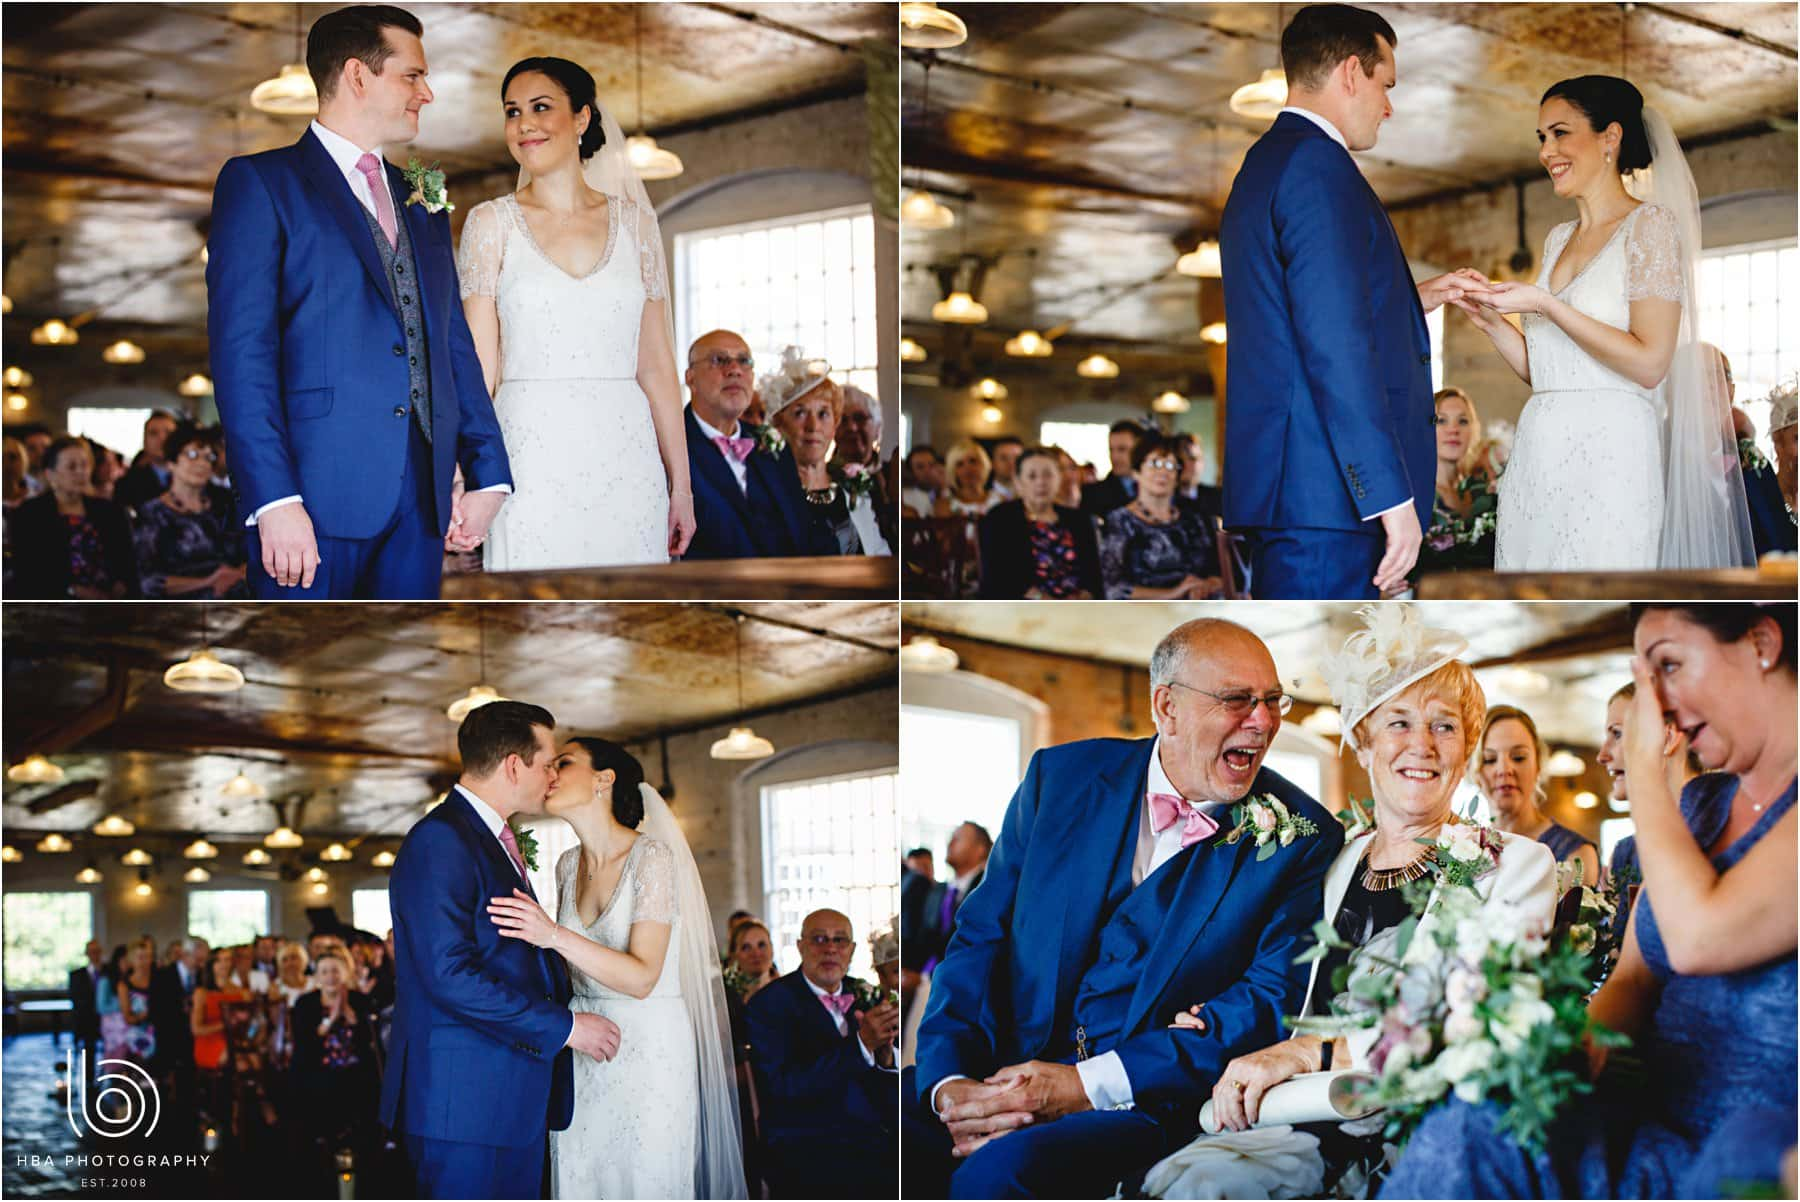 the wedding at The West Mill